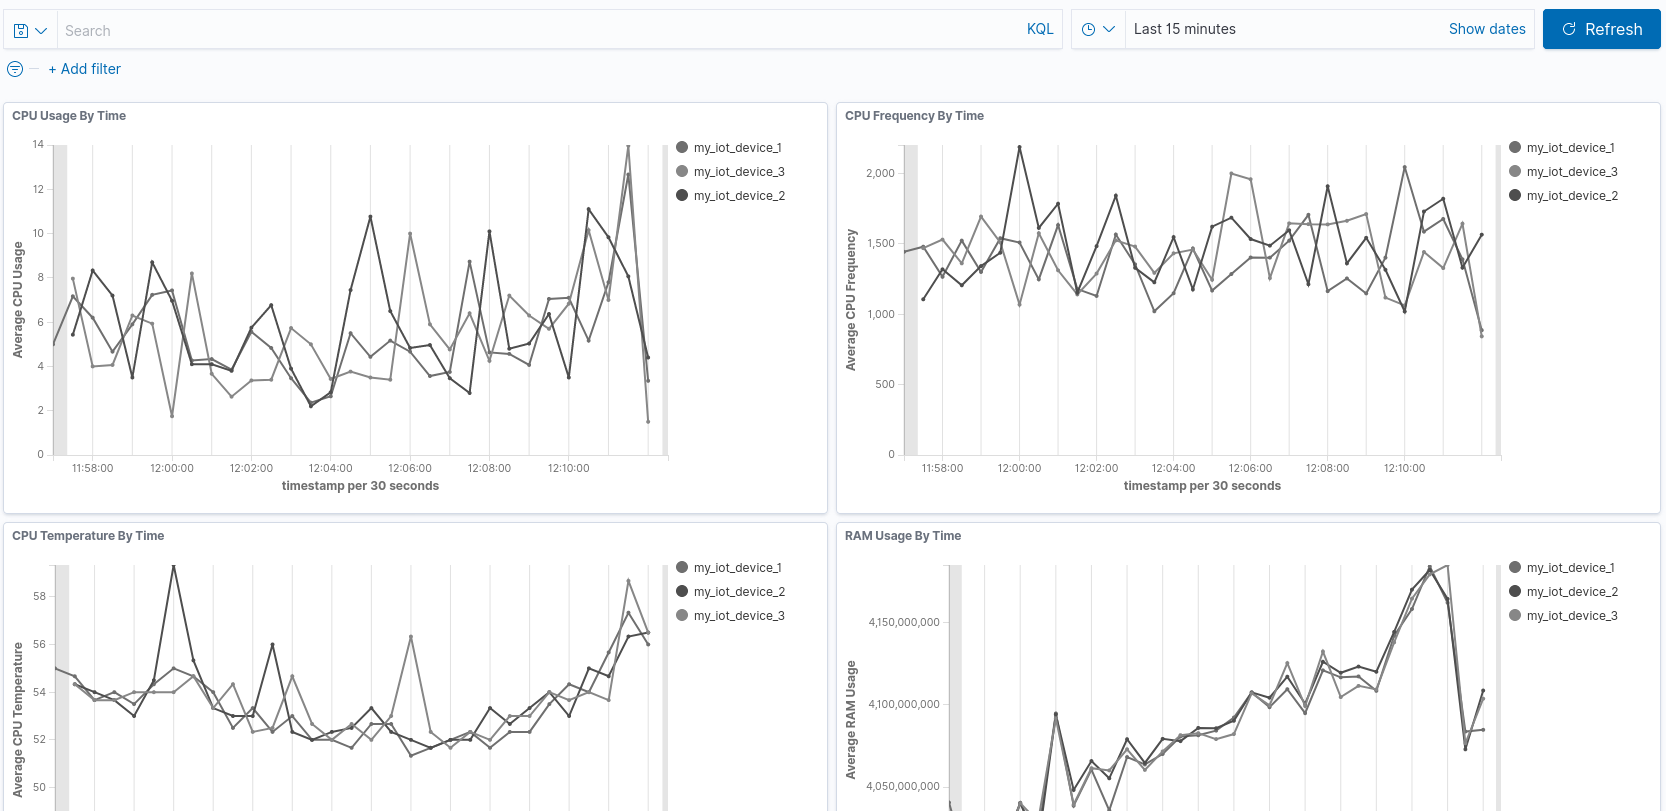 From Metal To Alerts With AWS IoT, ElasticSearch 7.9 and Kibana - Cover Image